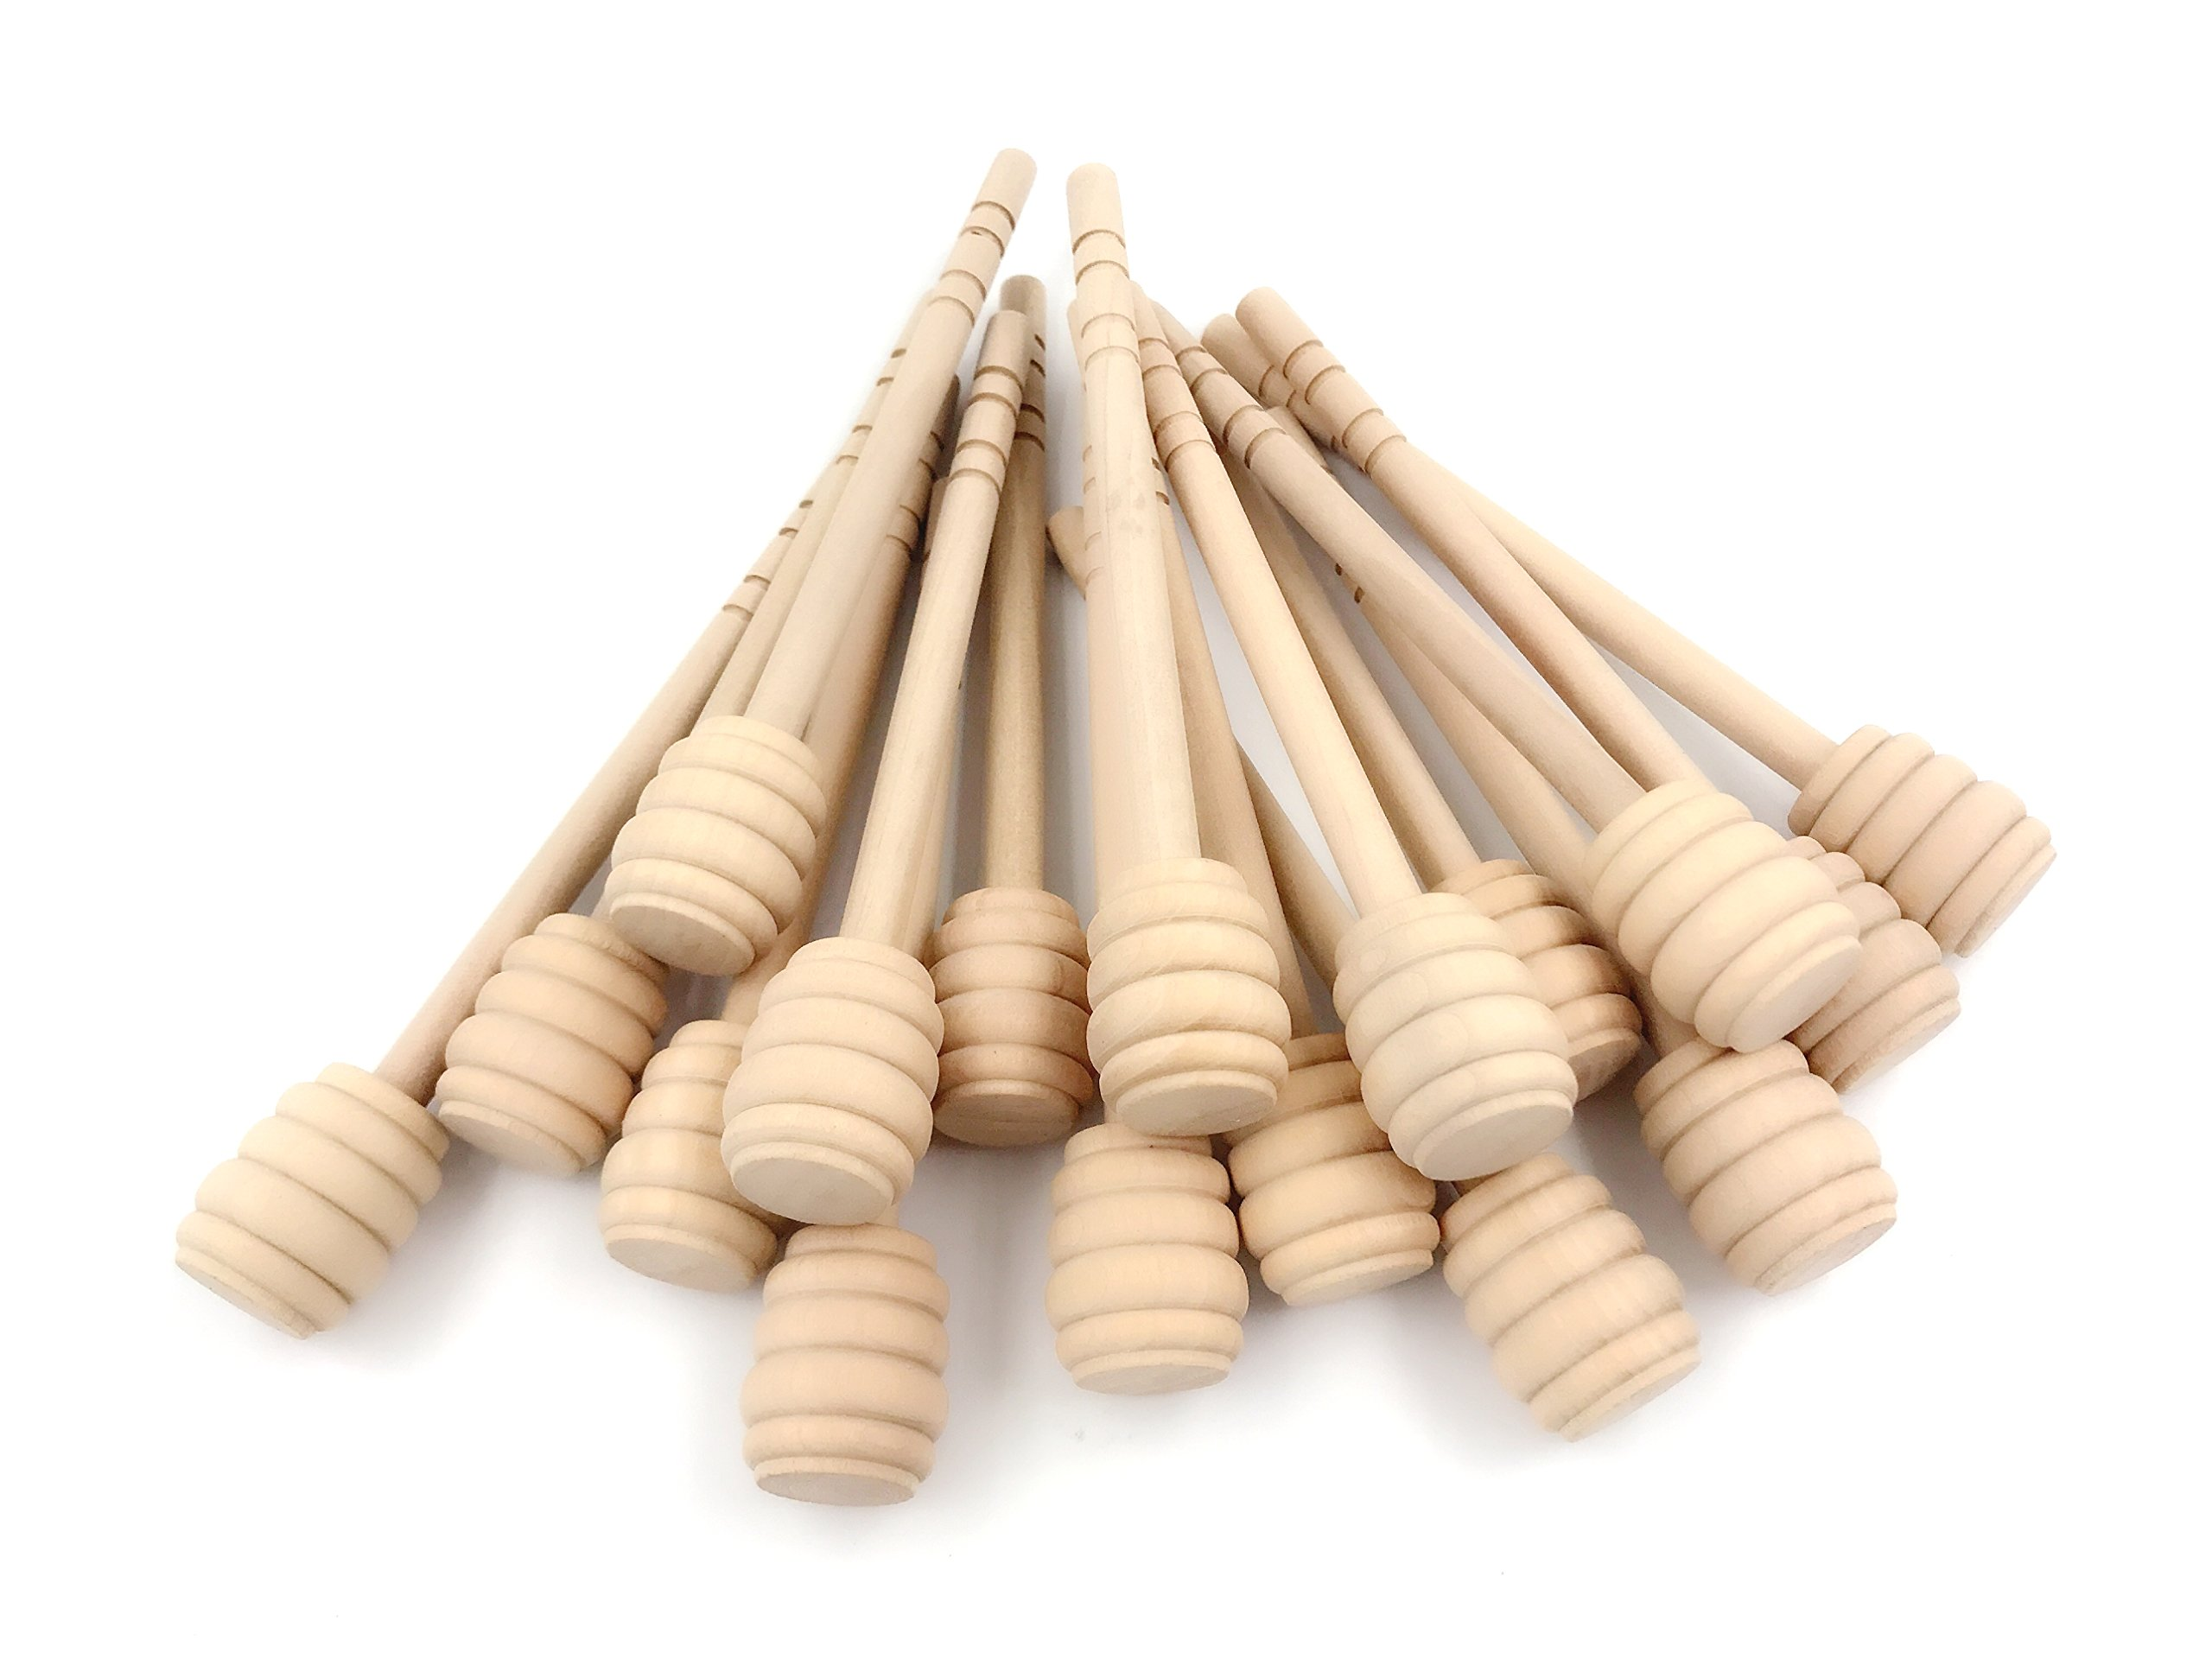 Set of 50 6 Inch Portable Wooden Jam Honey Dipper Honey Sticks for Honey Jar Dispense Drizzle Honey